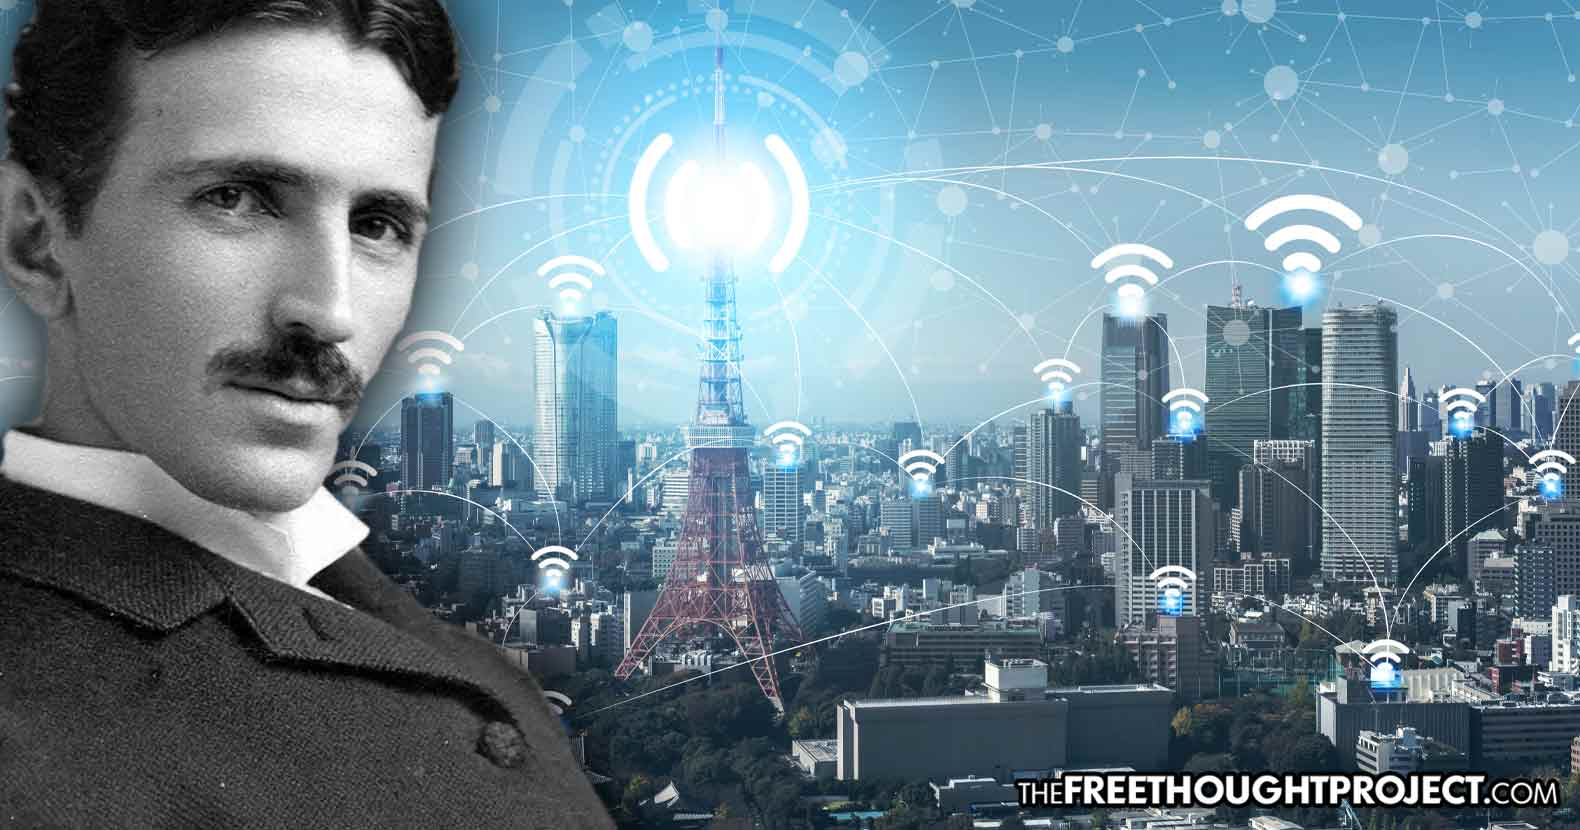 After Nikola Tesla Proved Wireless Electricity was Possible, A Startup Finally Made it a Reality